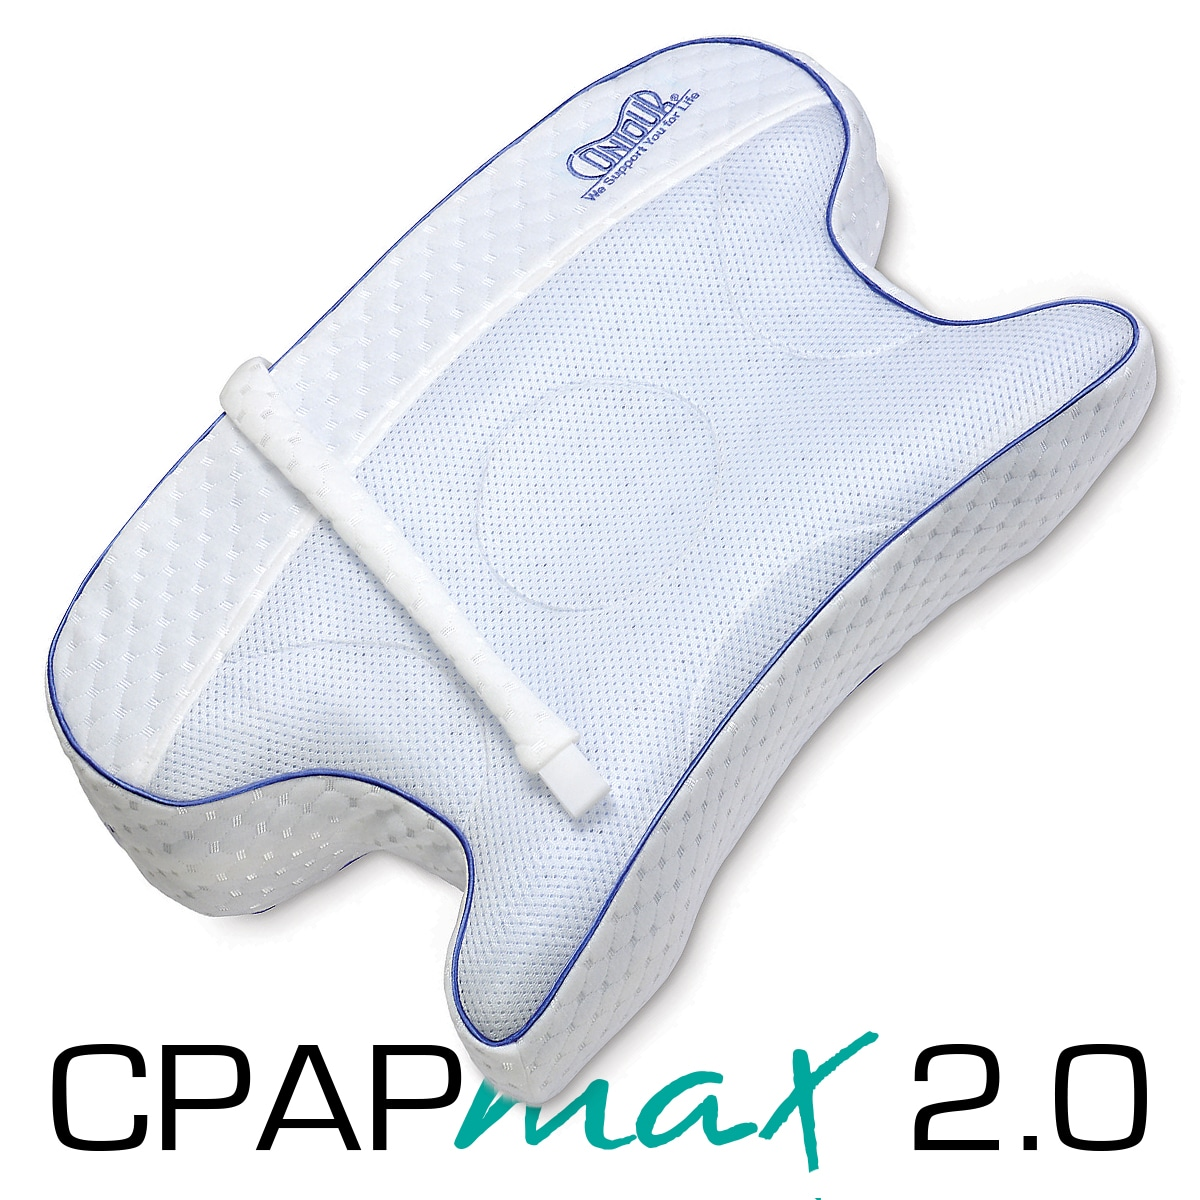 CPAPmax 2.0 CPAP Pillow with Removable Fitted Cover